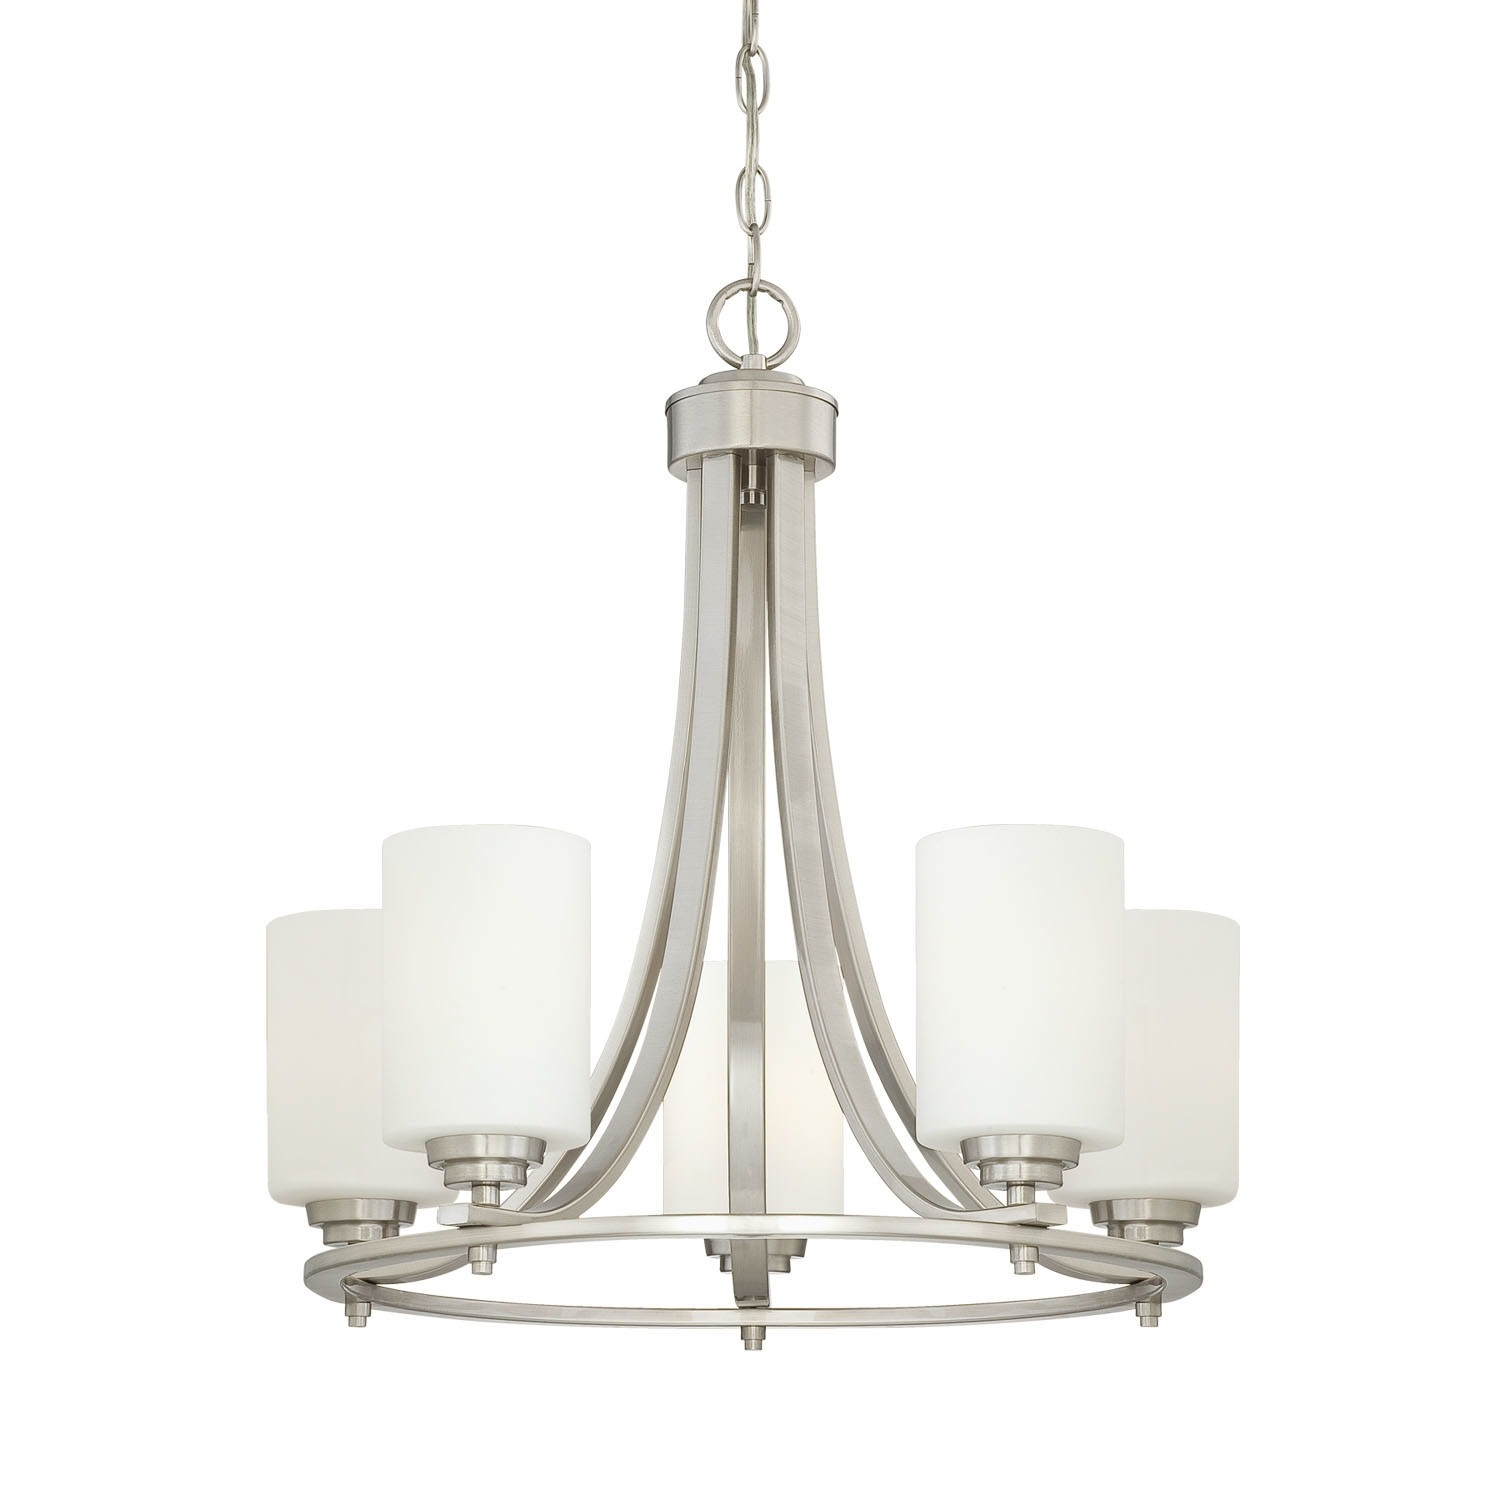 Lighting Chandeliers For Foyer Wall Sconces For Bathroom Pendant Intended For Antique Mirror Chandelier (Image 7 of 15)